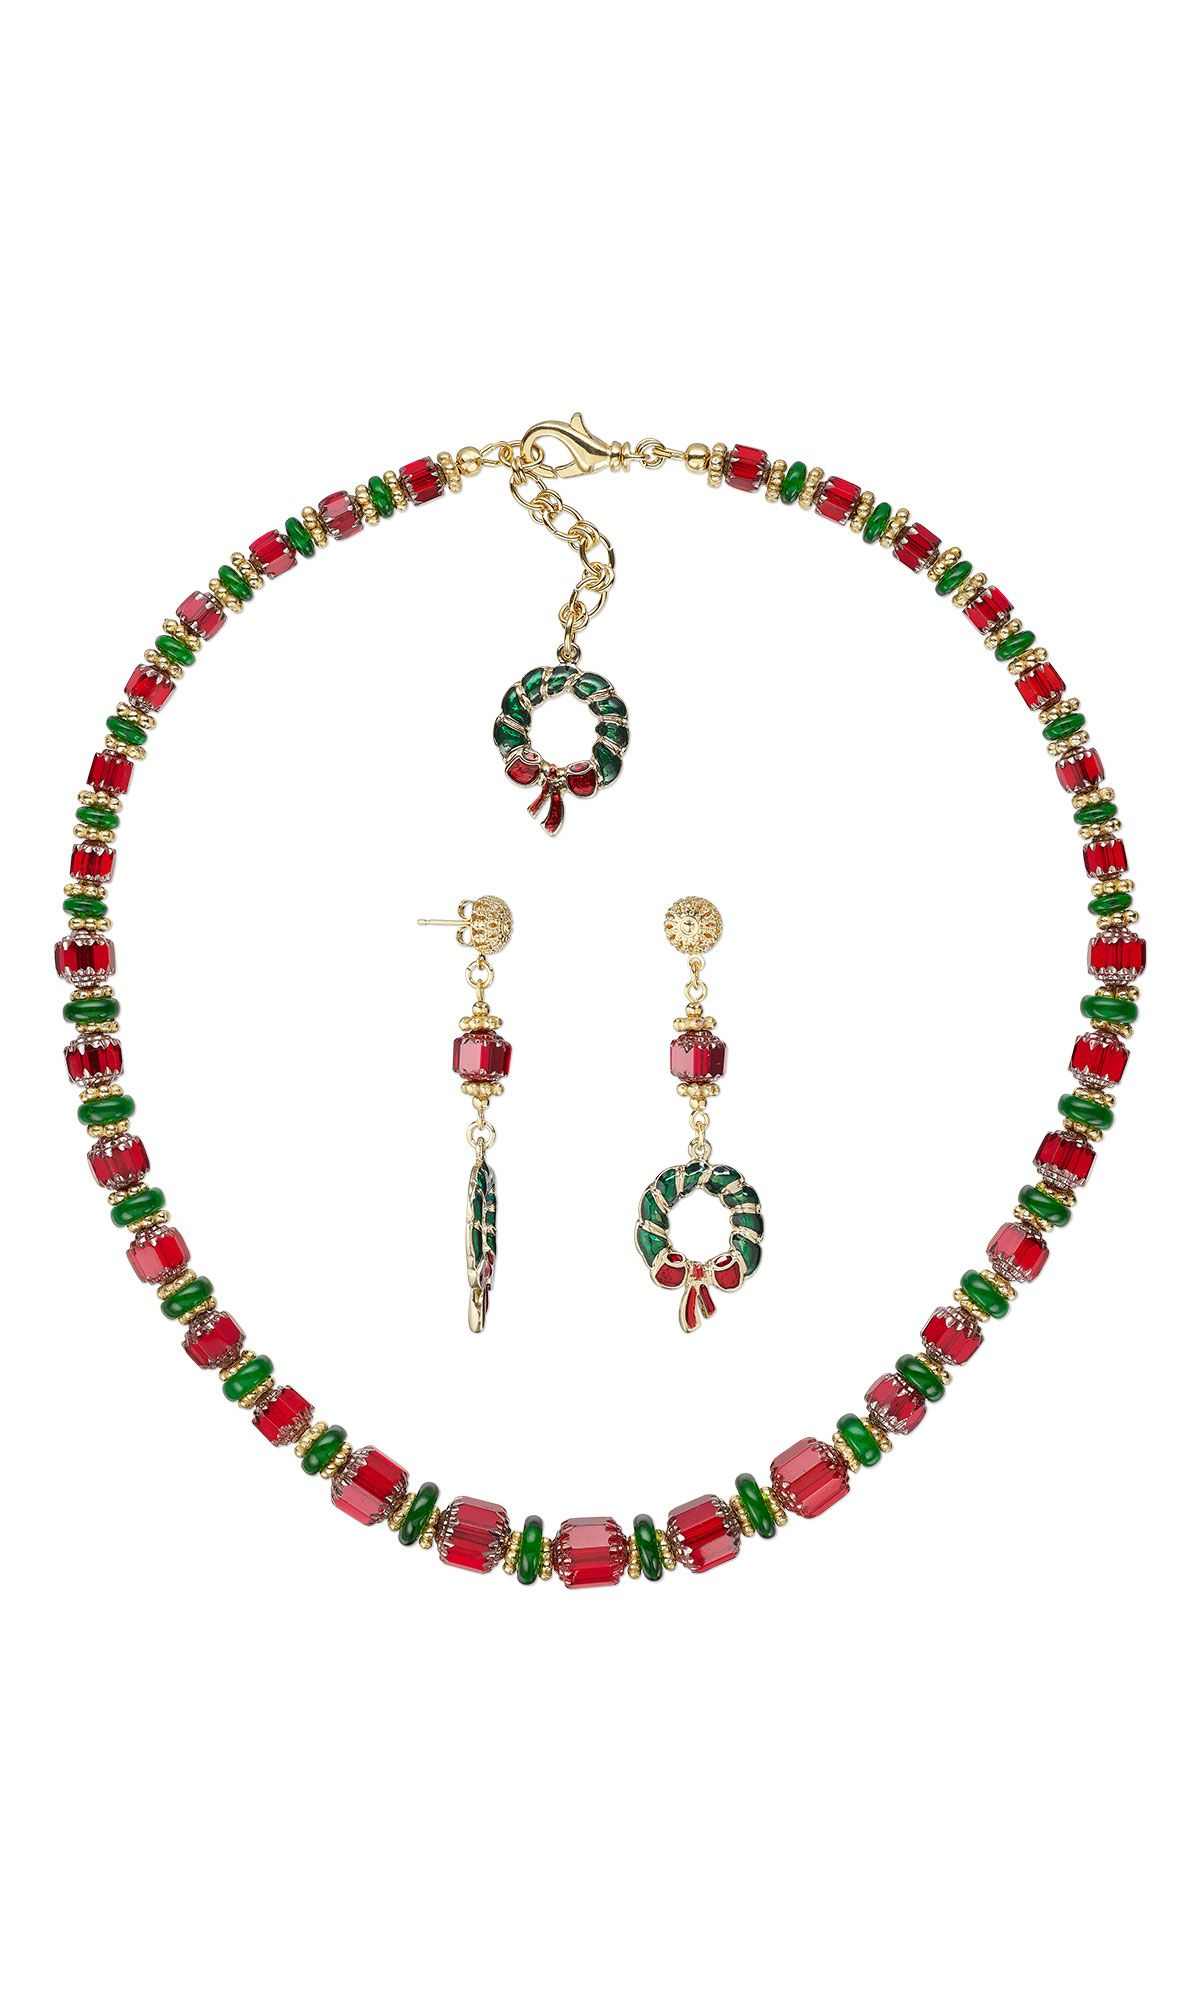 jewelry design single strand necklace and earring set with czech